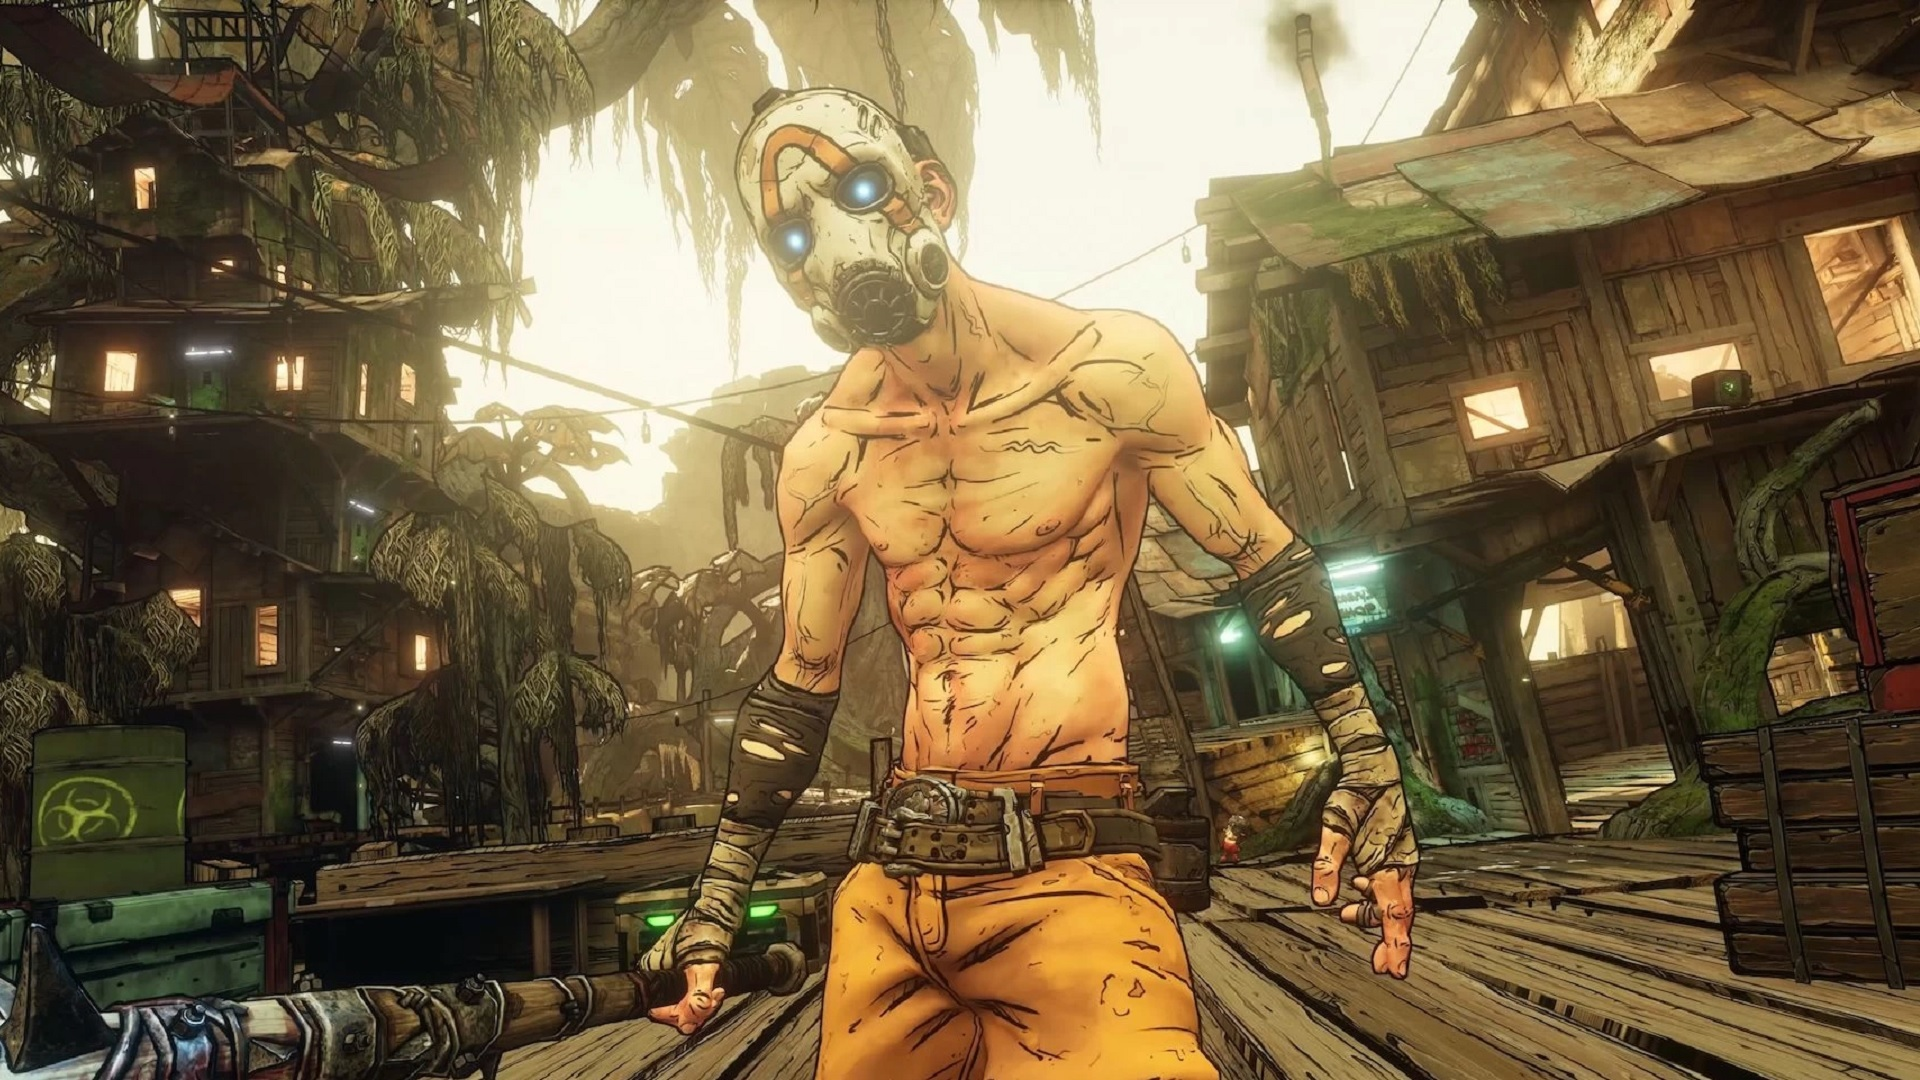 I PLAYED BORDERLANDS 3 AGAIN – My Brutally Honest Opinion